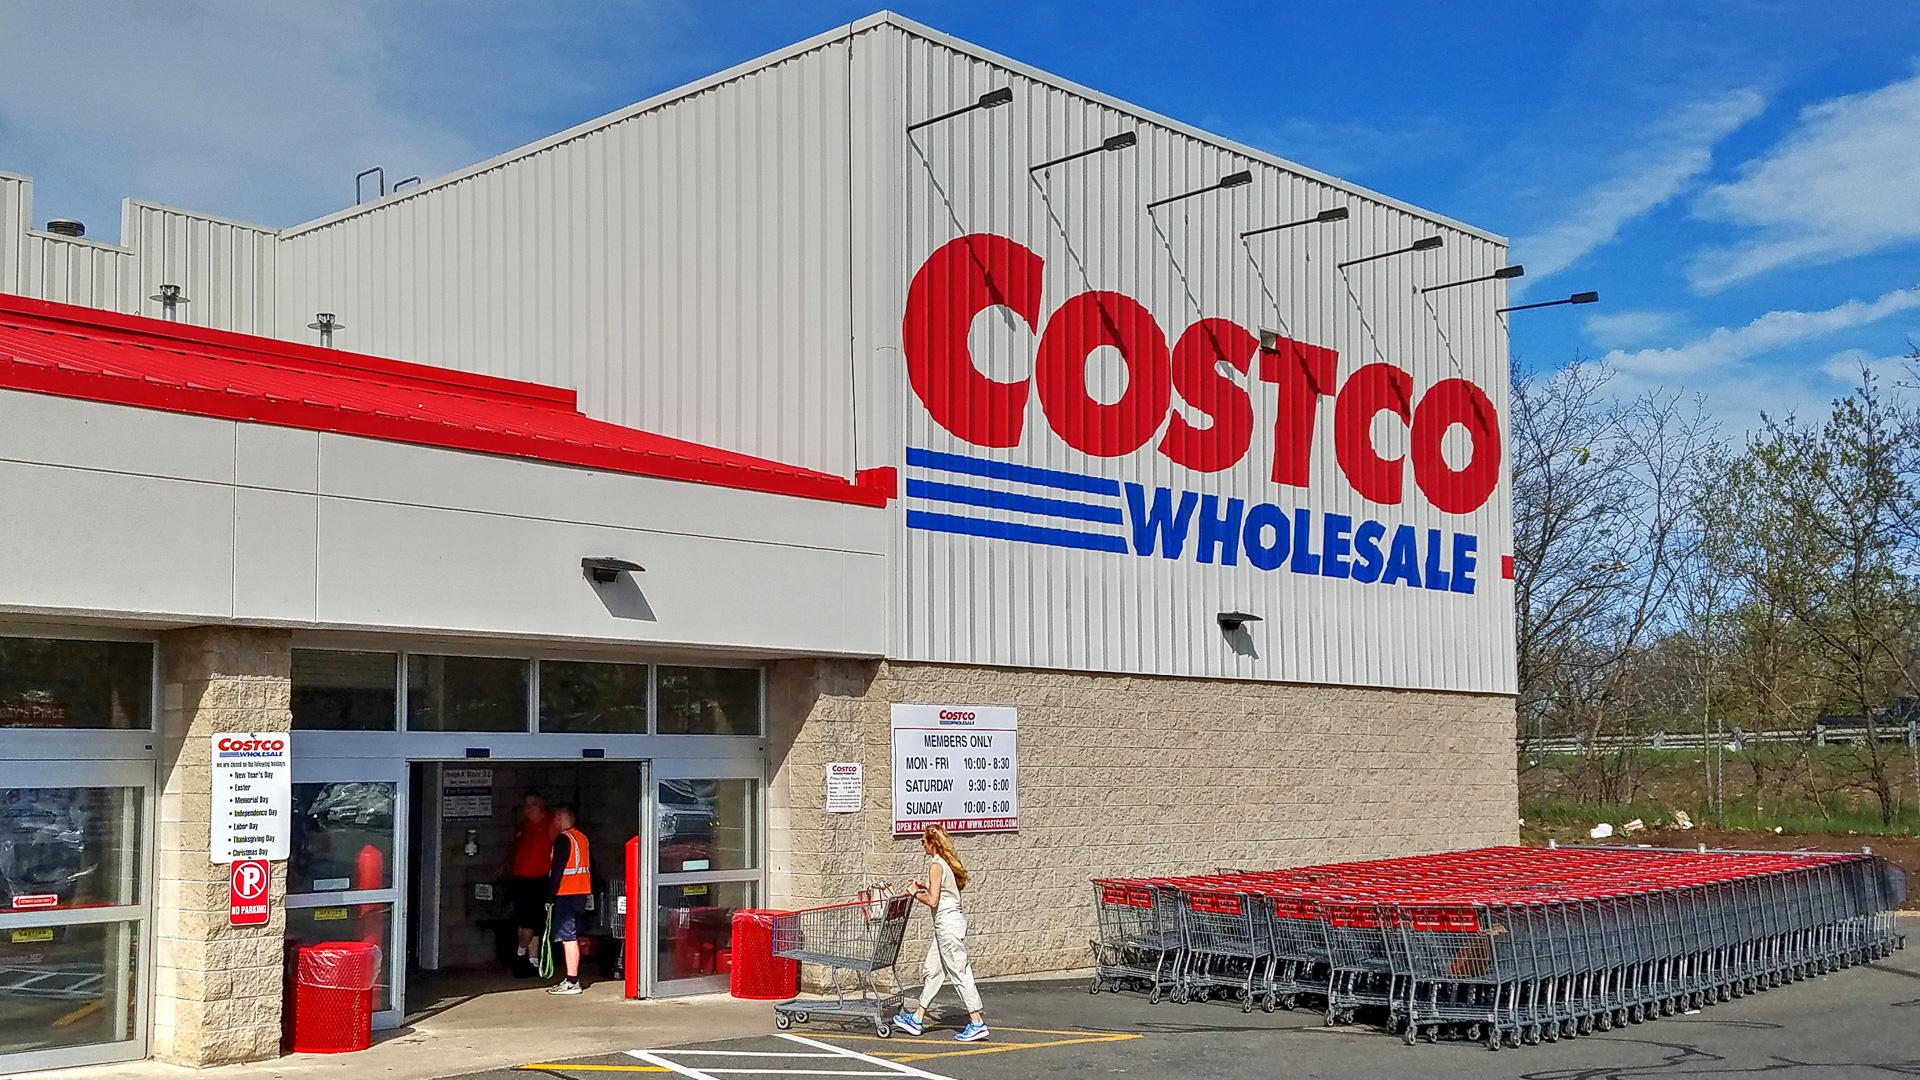 Yes Bank Home Loan Career 5 Best And Worst Jobs At Costco Gobankingrates